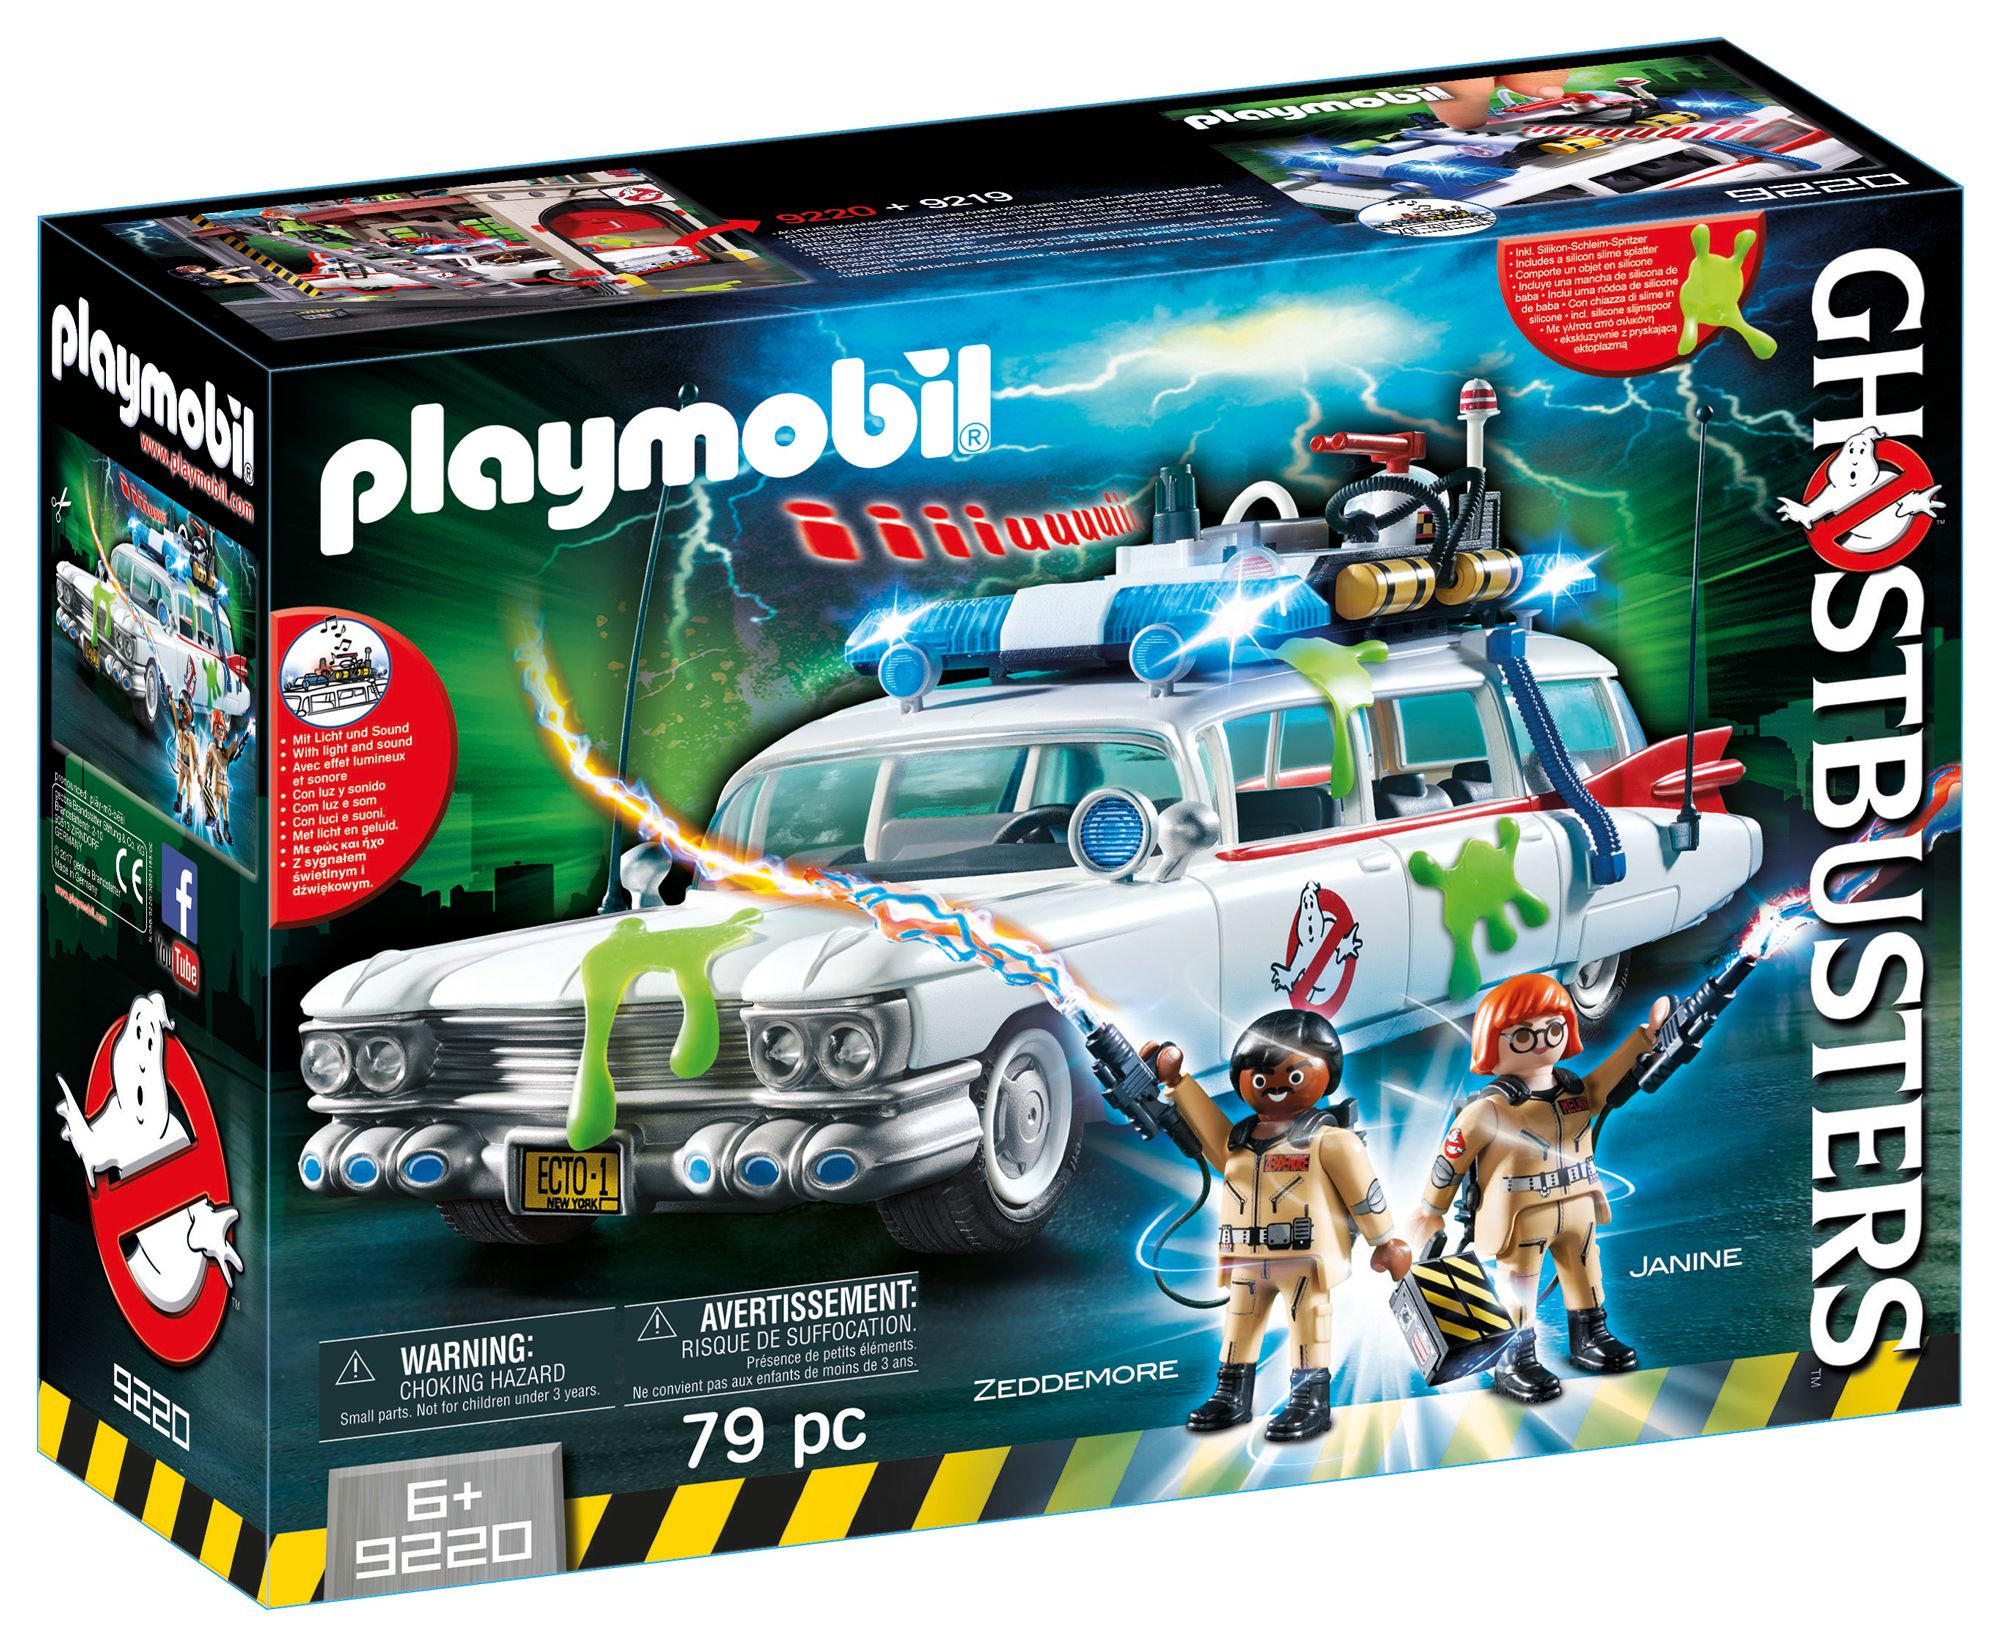 Playmobil s New Ghostbusters Toys Are So Great You ll Wish You Had